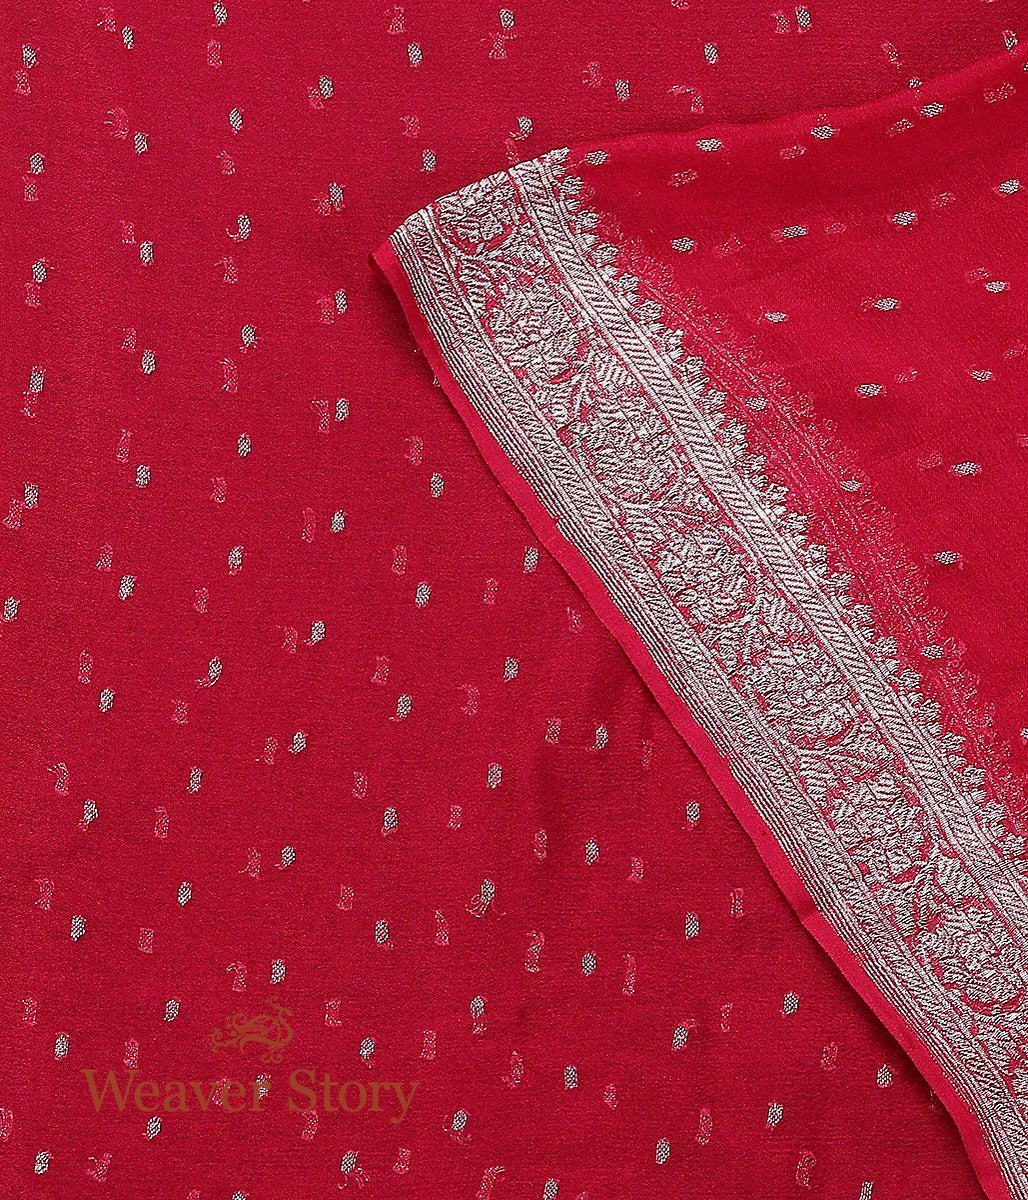 Handwoven Red Georgette Dupatta with Silver Zari